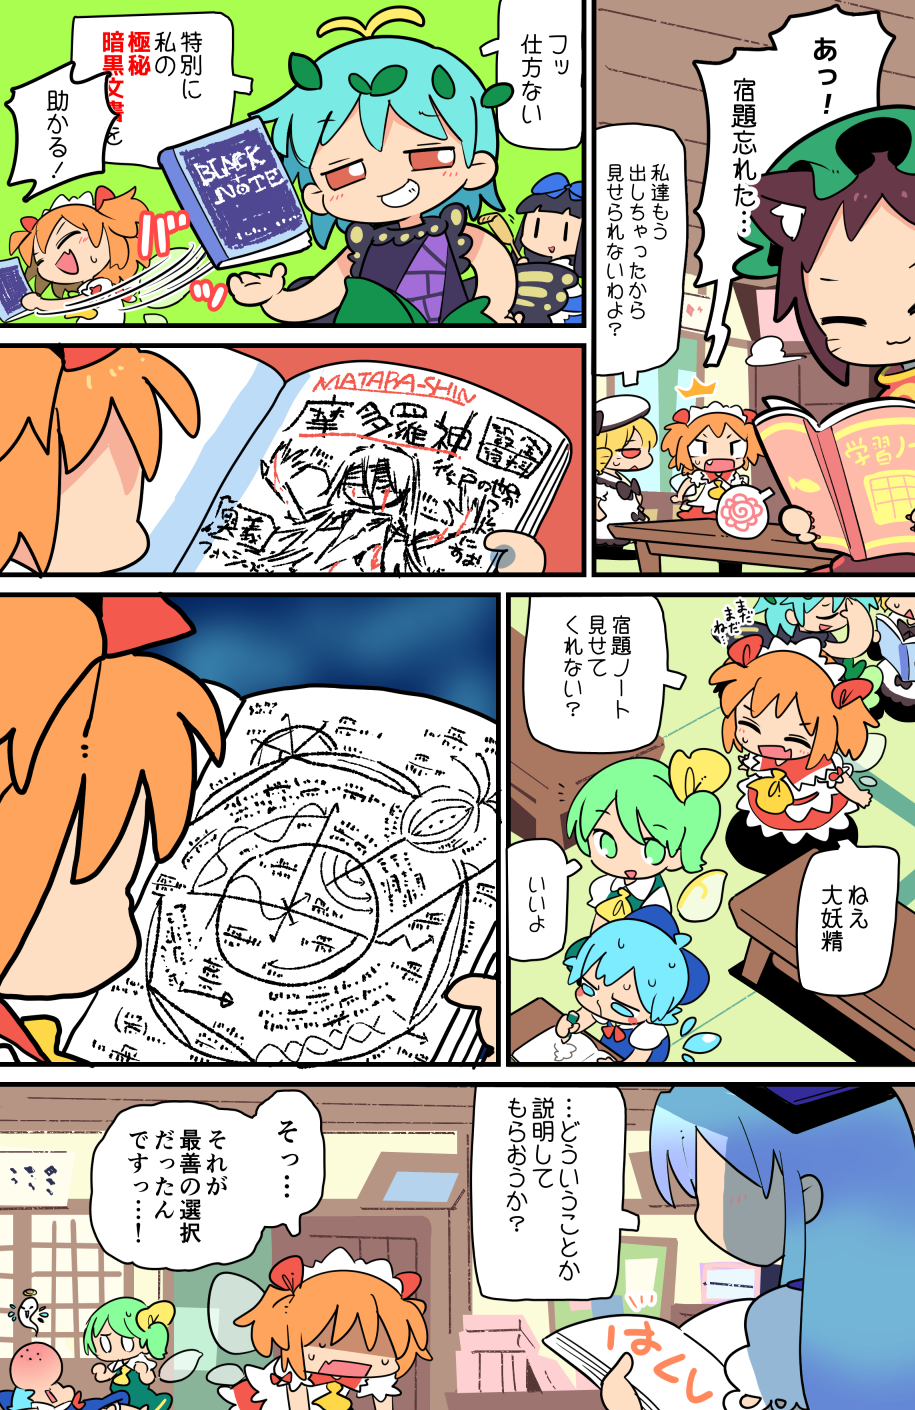 6+girls :3 aqua_hair back_scratcher black_hair blonde_hair blue_eyes blue_hair book bow brown_eyes butterfly_wings chen chestnut_mouth chuunibyou cirno comic daiyousei drawing eternity_larva fairy_wings fang giving_up_the_ghost gradient_hair green_eyes green_hair halo head_bump headdress highres homework ice ice_wings kamishirasawa_keine luna_child moyazou_(kitaguni_moyashi_seizoujo) multicolored_hair multiple_girls notebook orange_hair parody red_eyes shaded_face short_hair side_ponytail spoken_flower star_sapphire sunny_milk sweat touhou translation_request wings